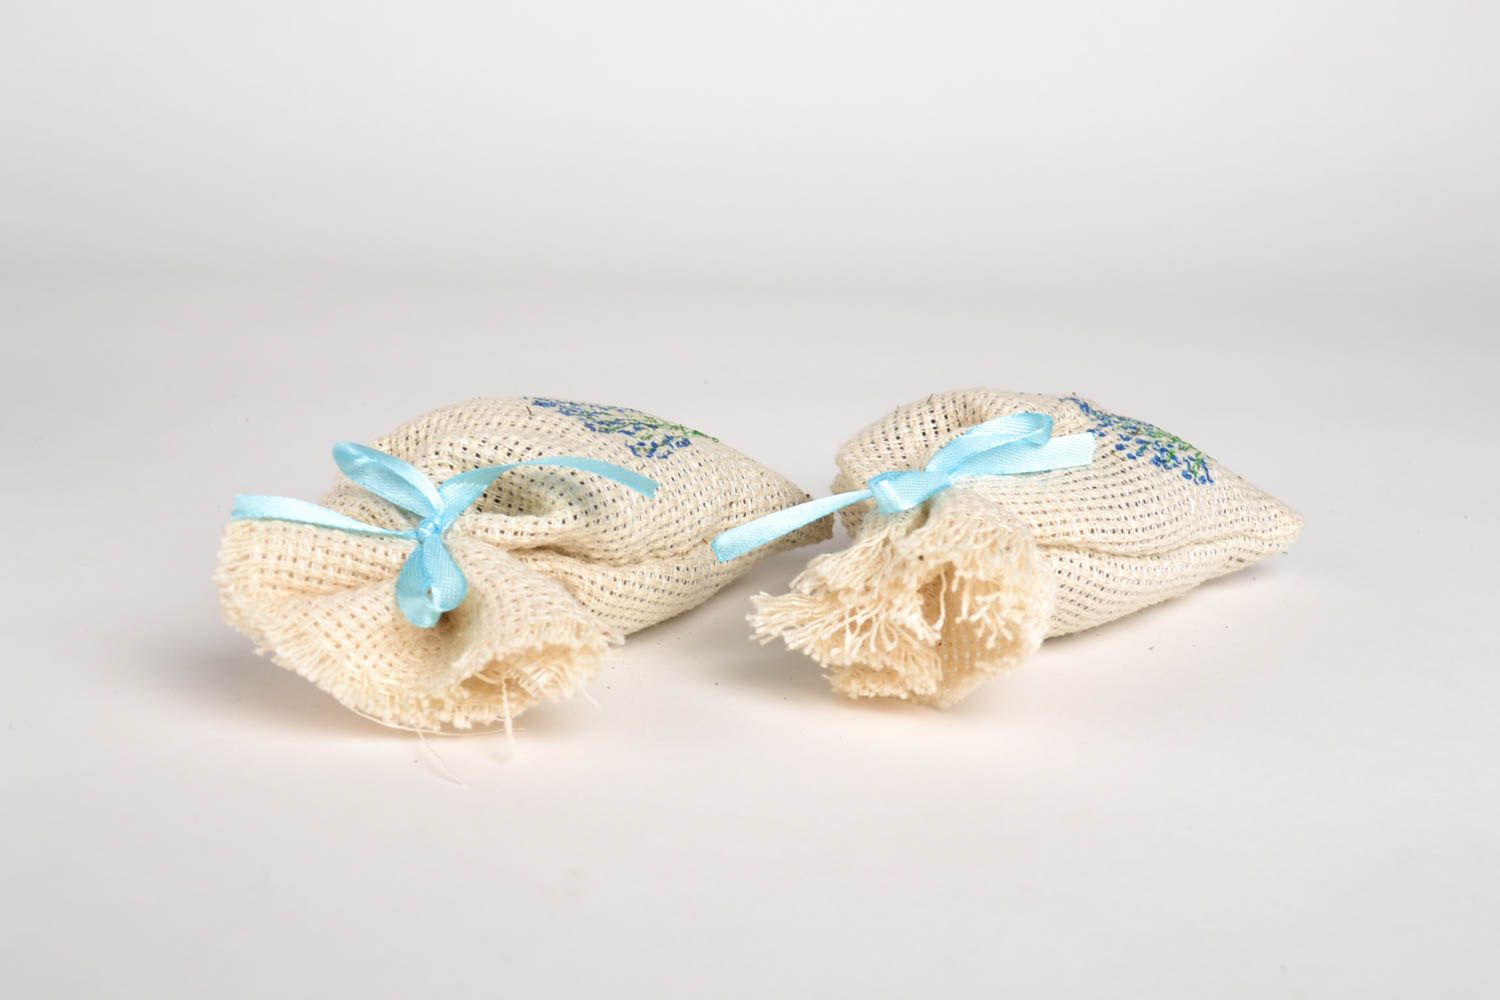 Handmade sachet bag with herbs home design aromatherapy at home small gifts photo 3